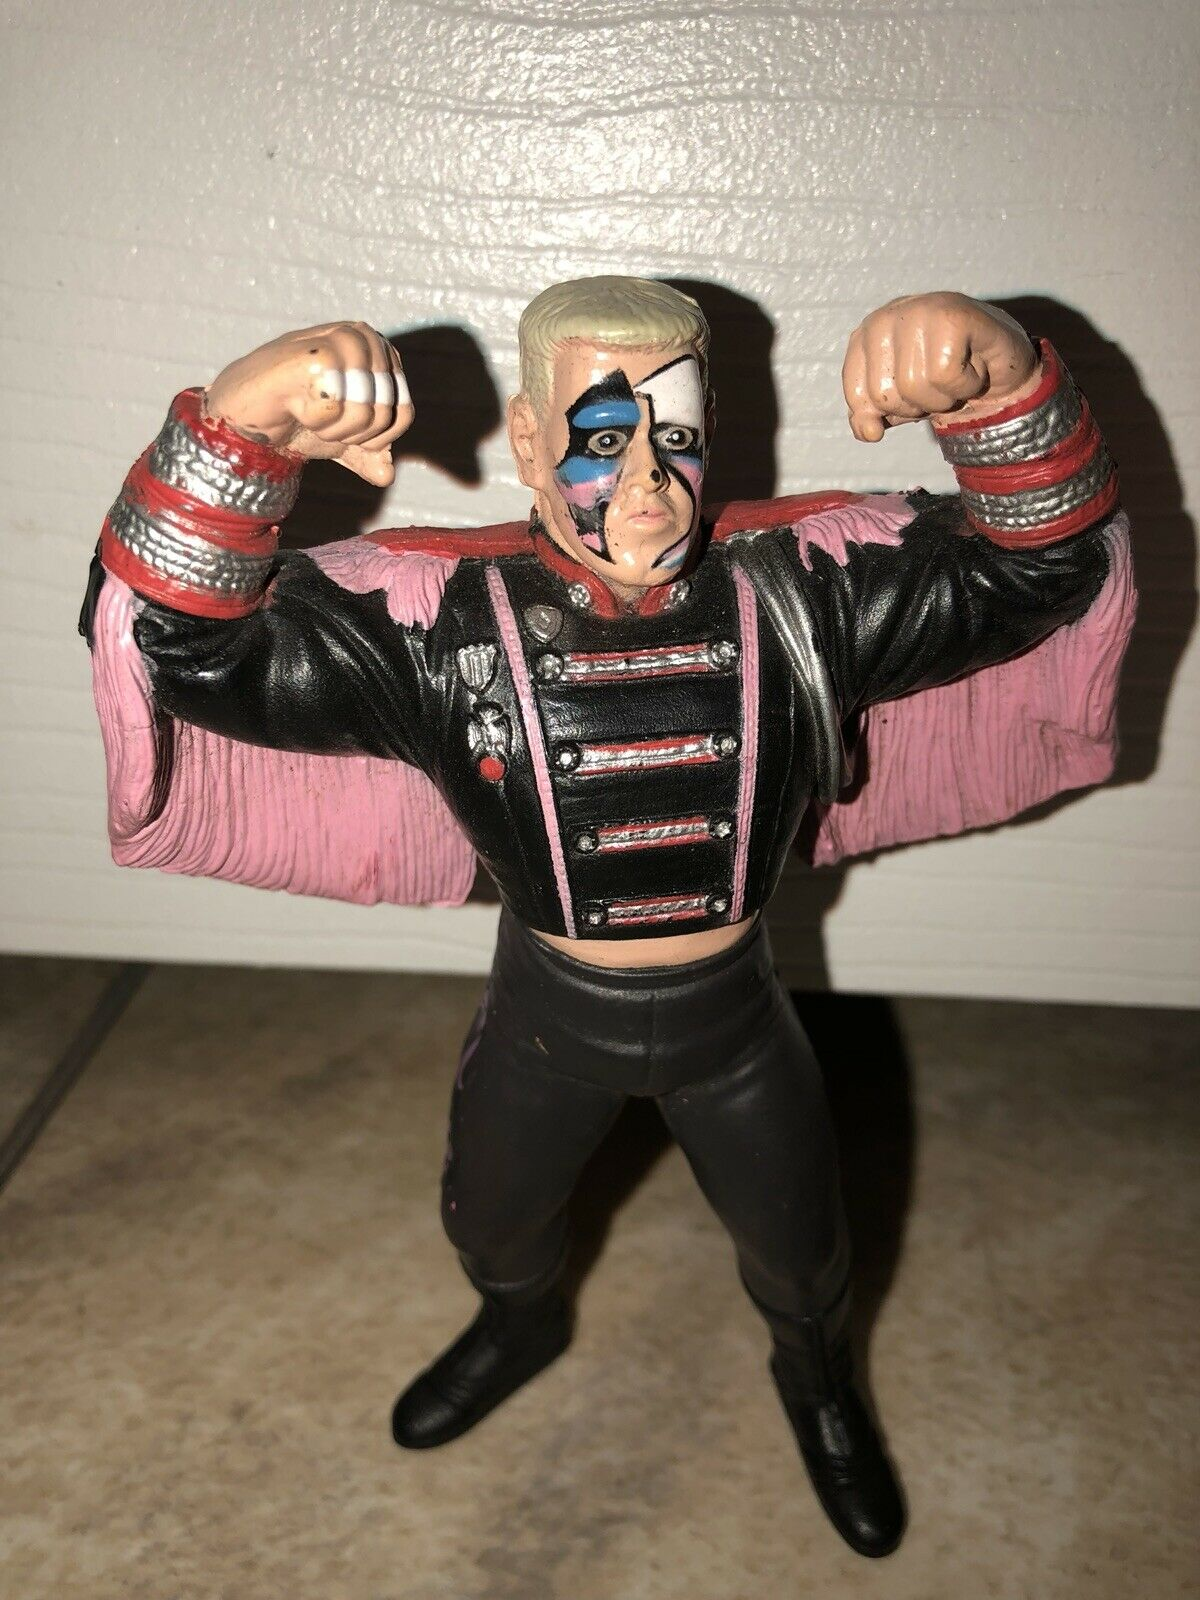 RARE WCW Galoob Sting Uk Version With Ring Entrance Gear